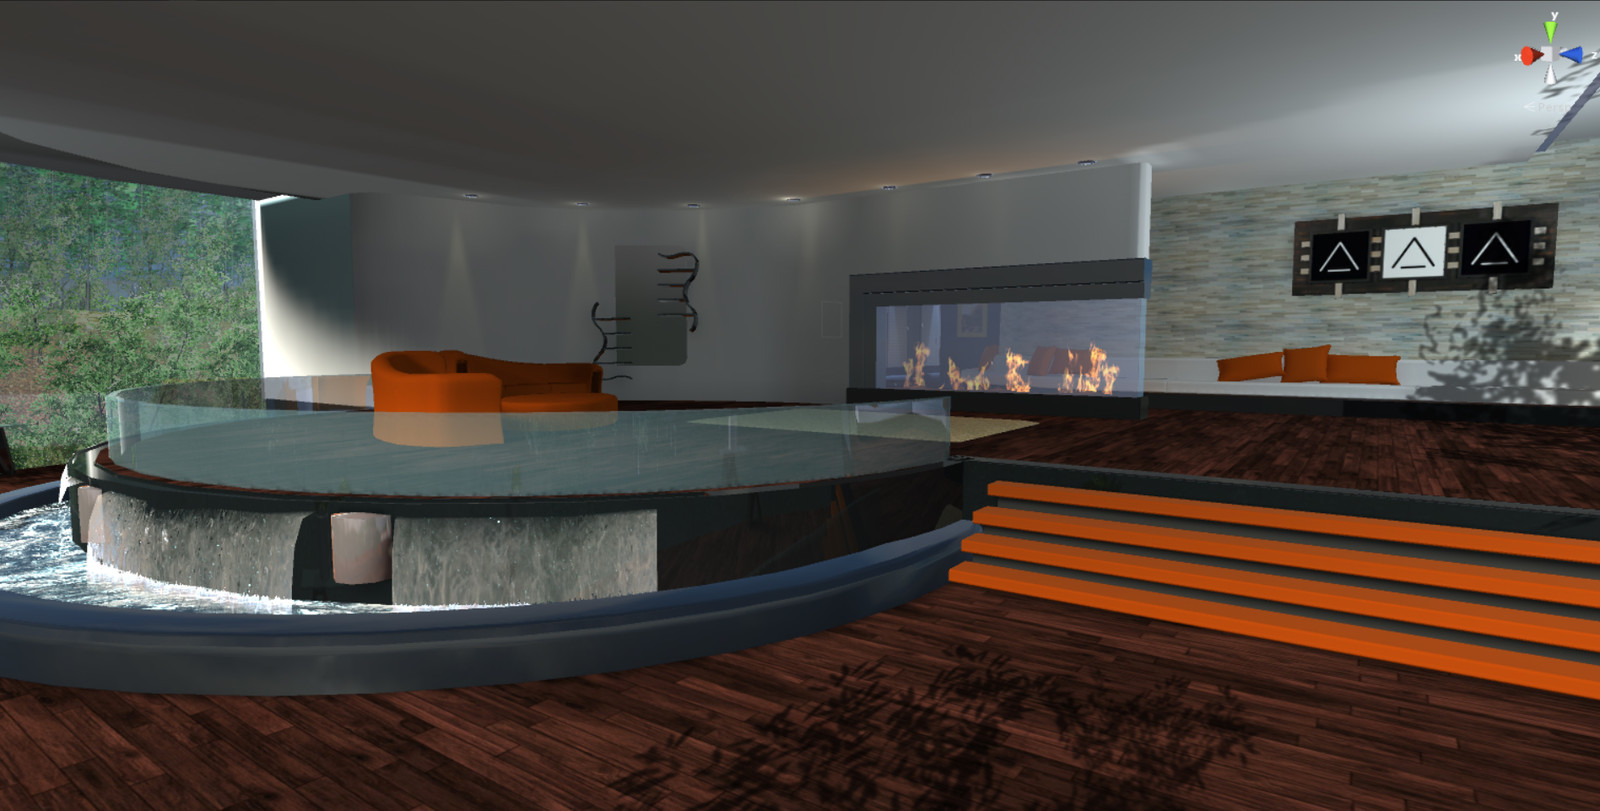 Old Personal Theater Concept